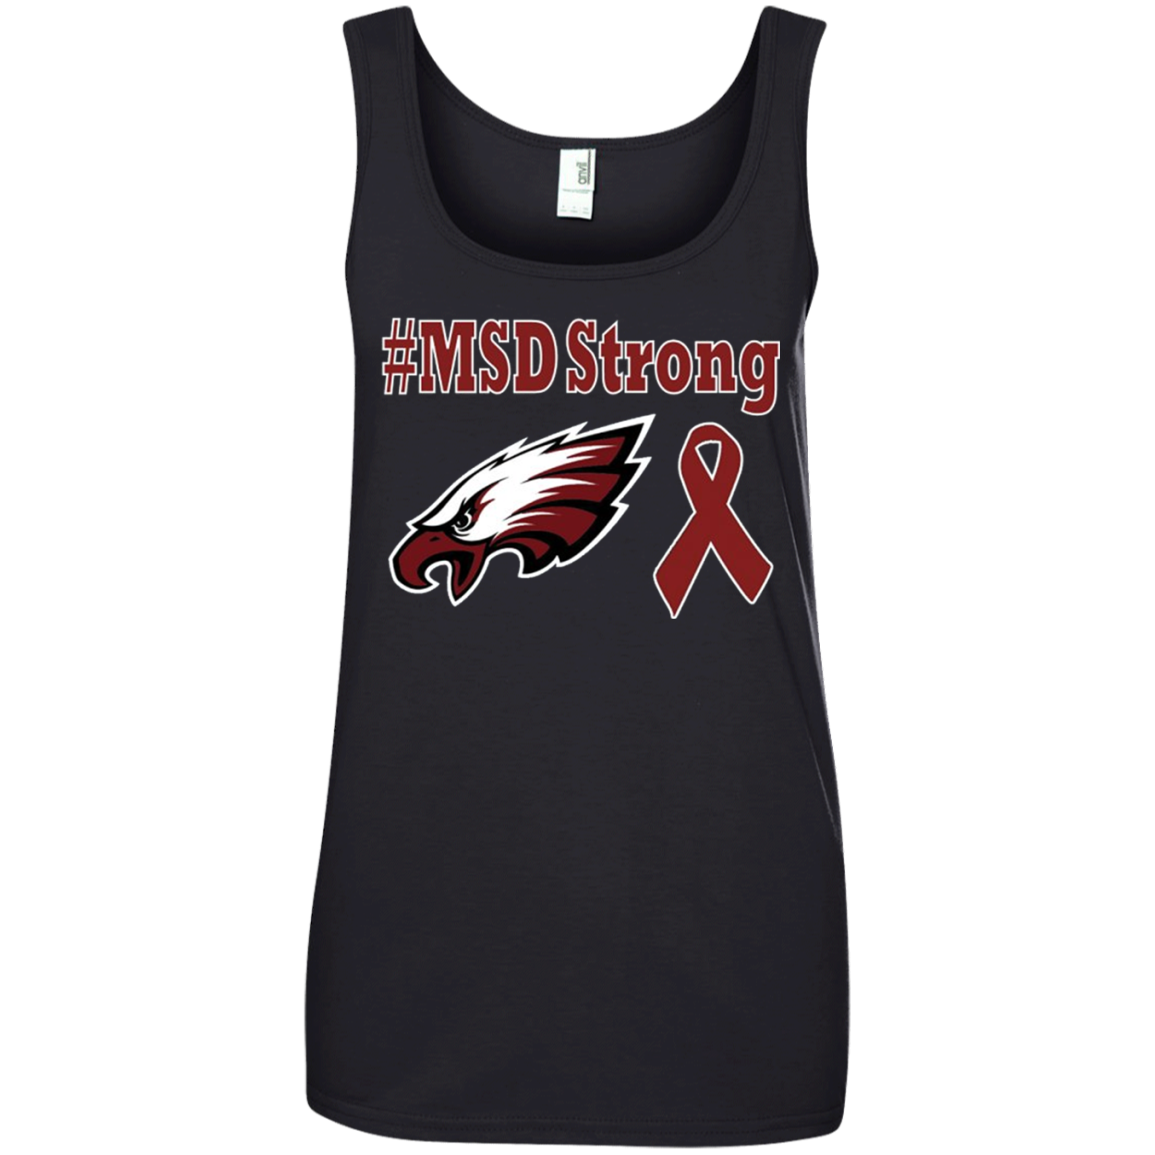 #MSD Strong - Marjory Stoneman Douglas High School T shirt Hoodie Sweater Tank Top 882